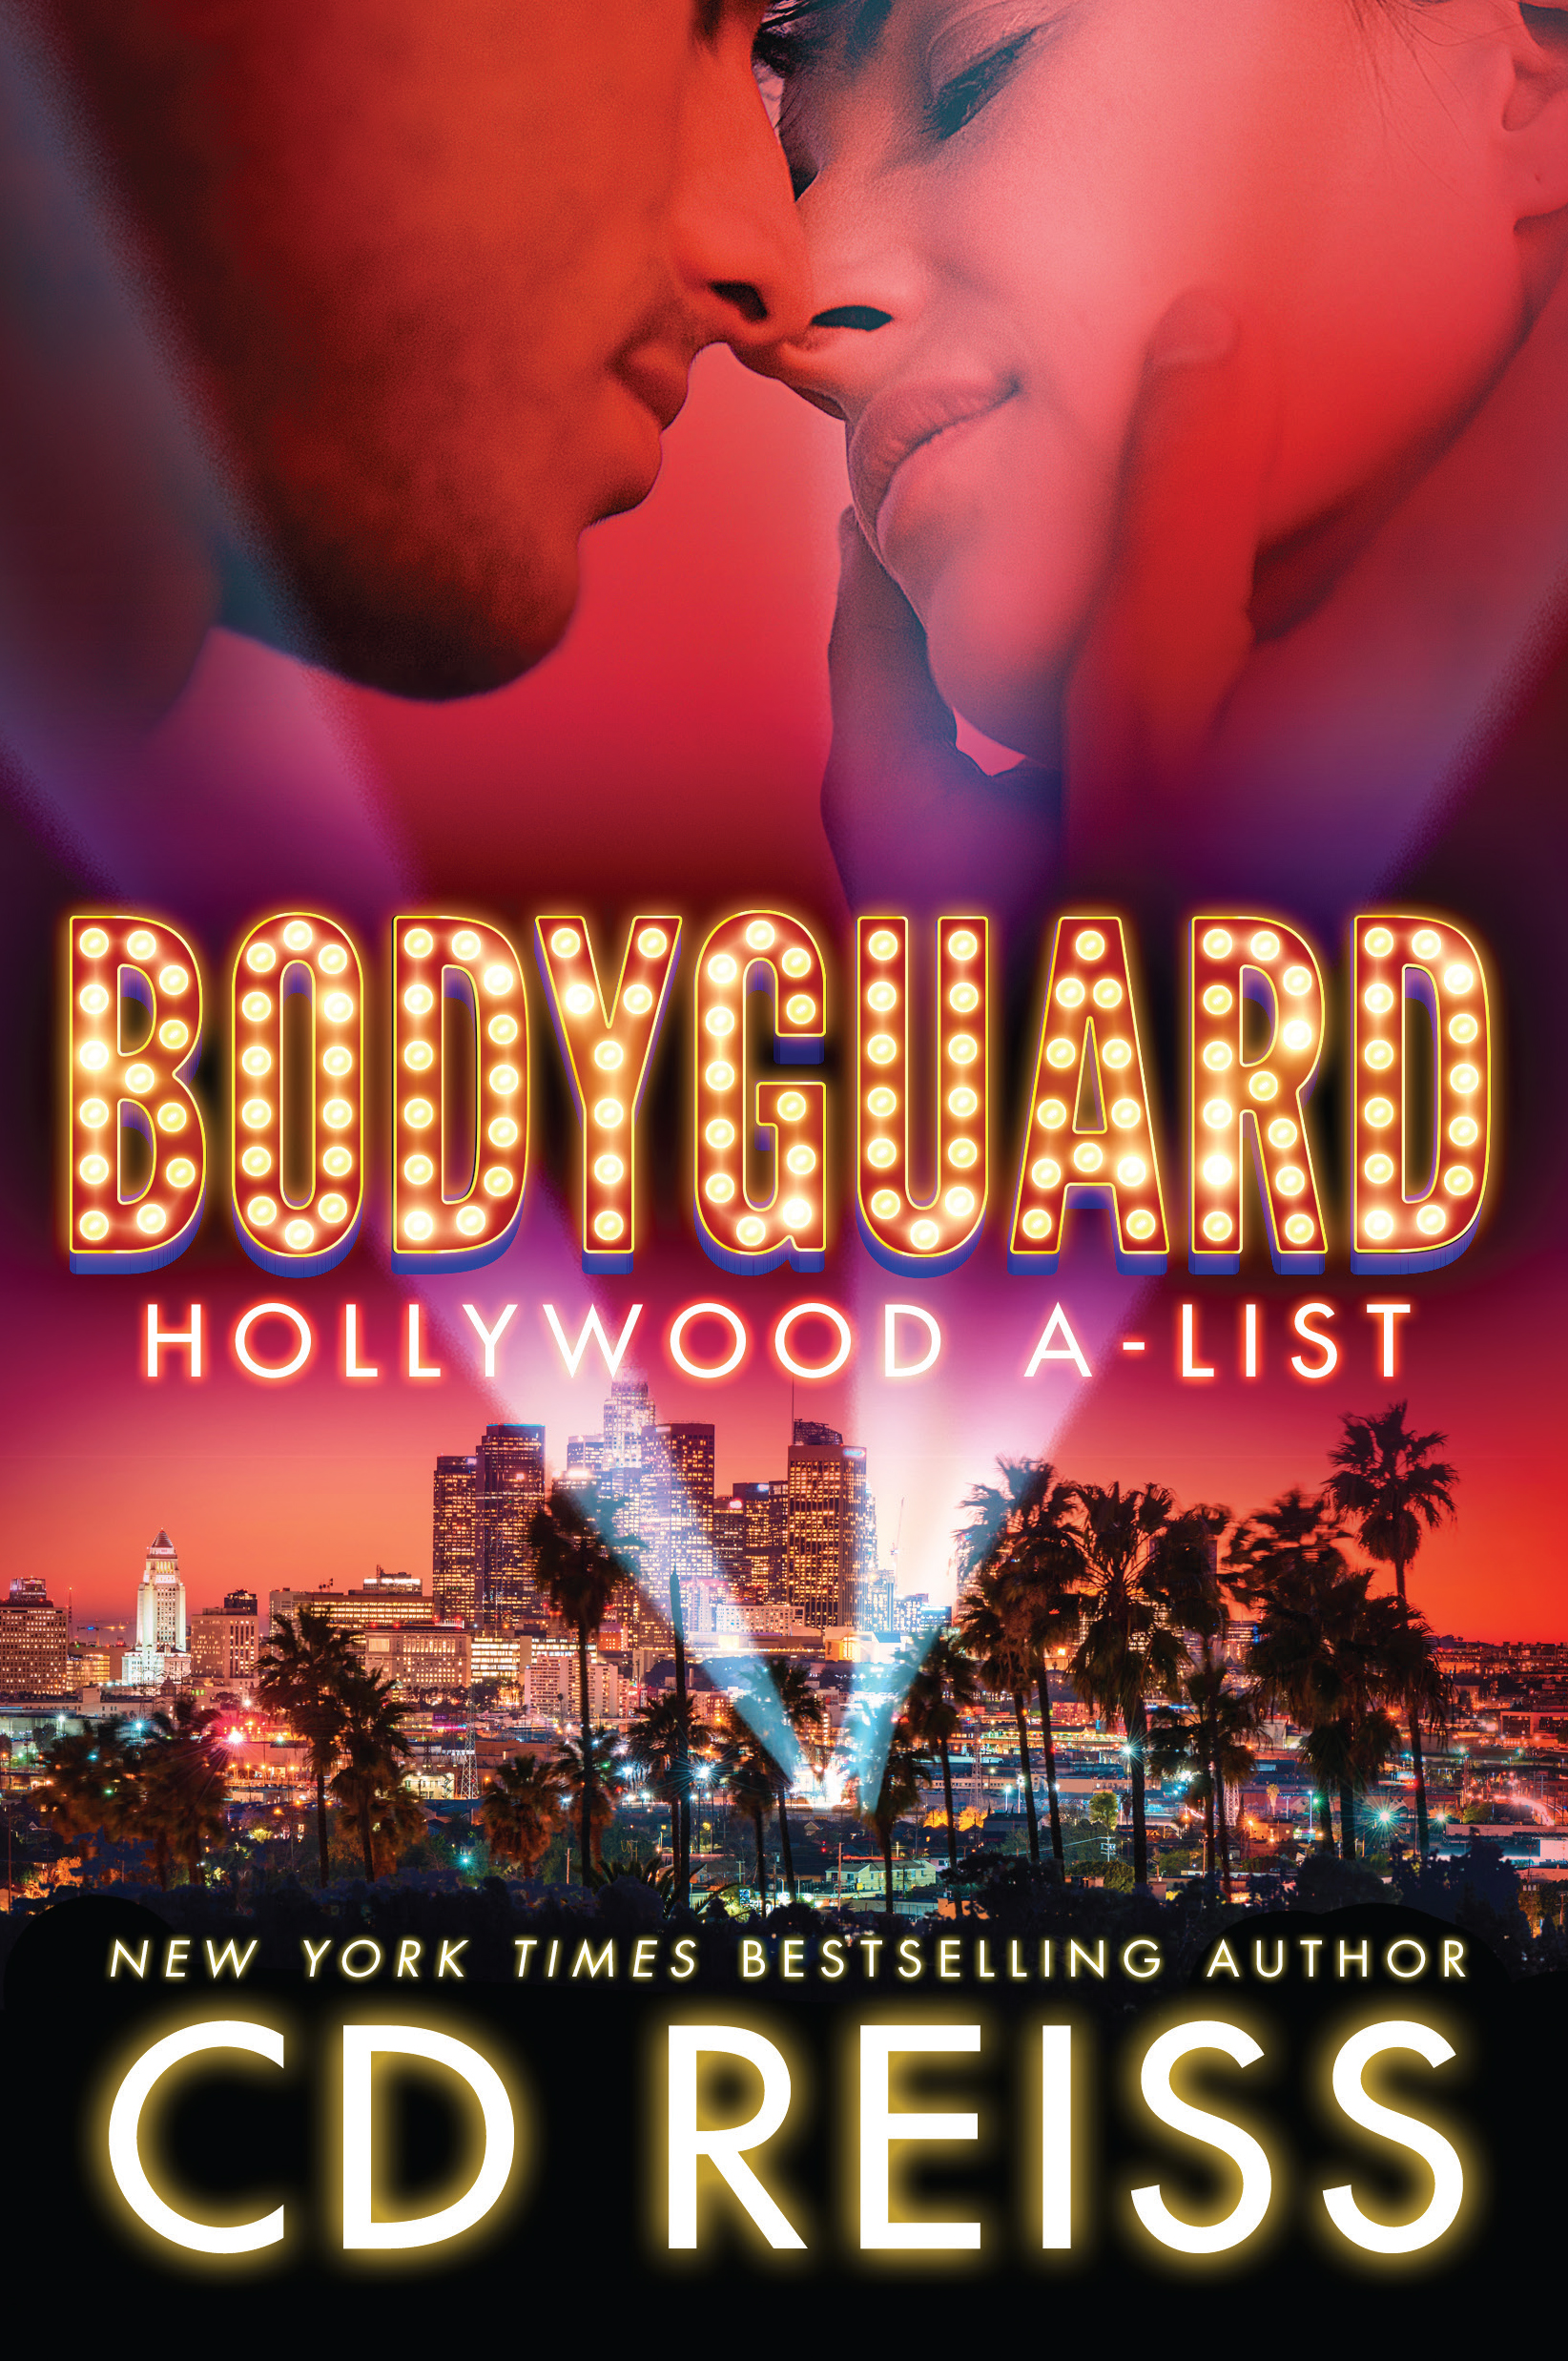 BODYGUARD by New York Times bestselling Romance Author CD Reiss